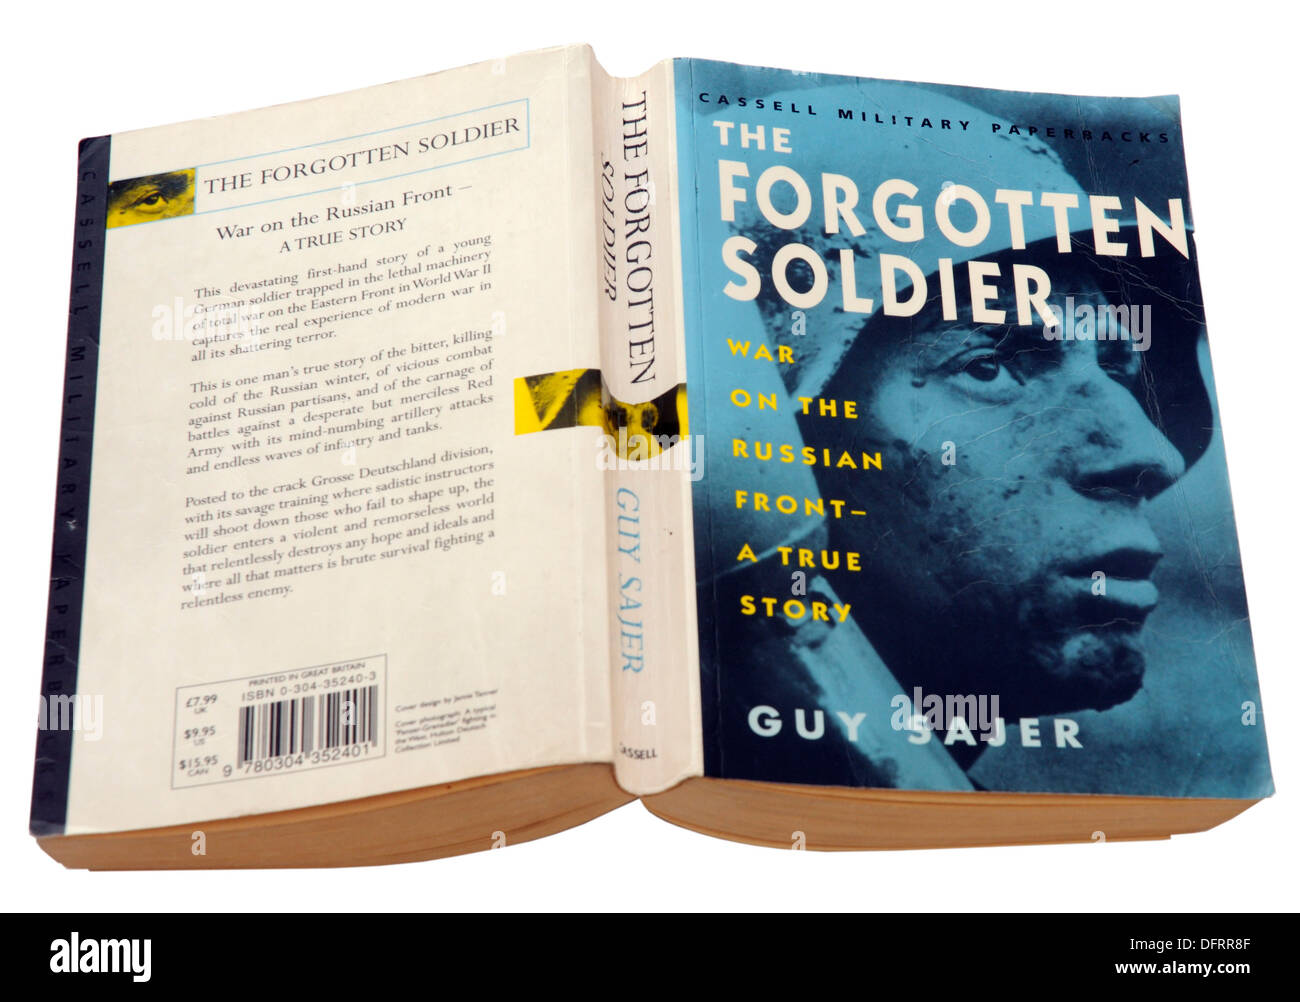 The Forgotten Soldier by Guy Sajer - Stock Image